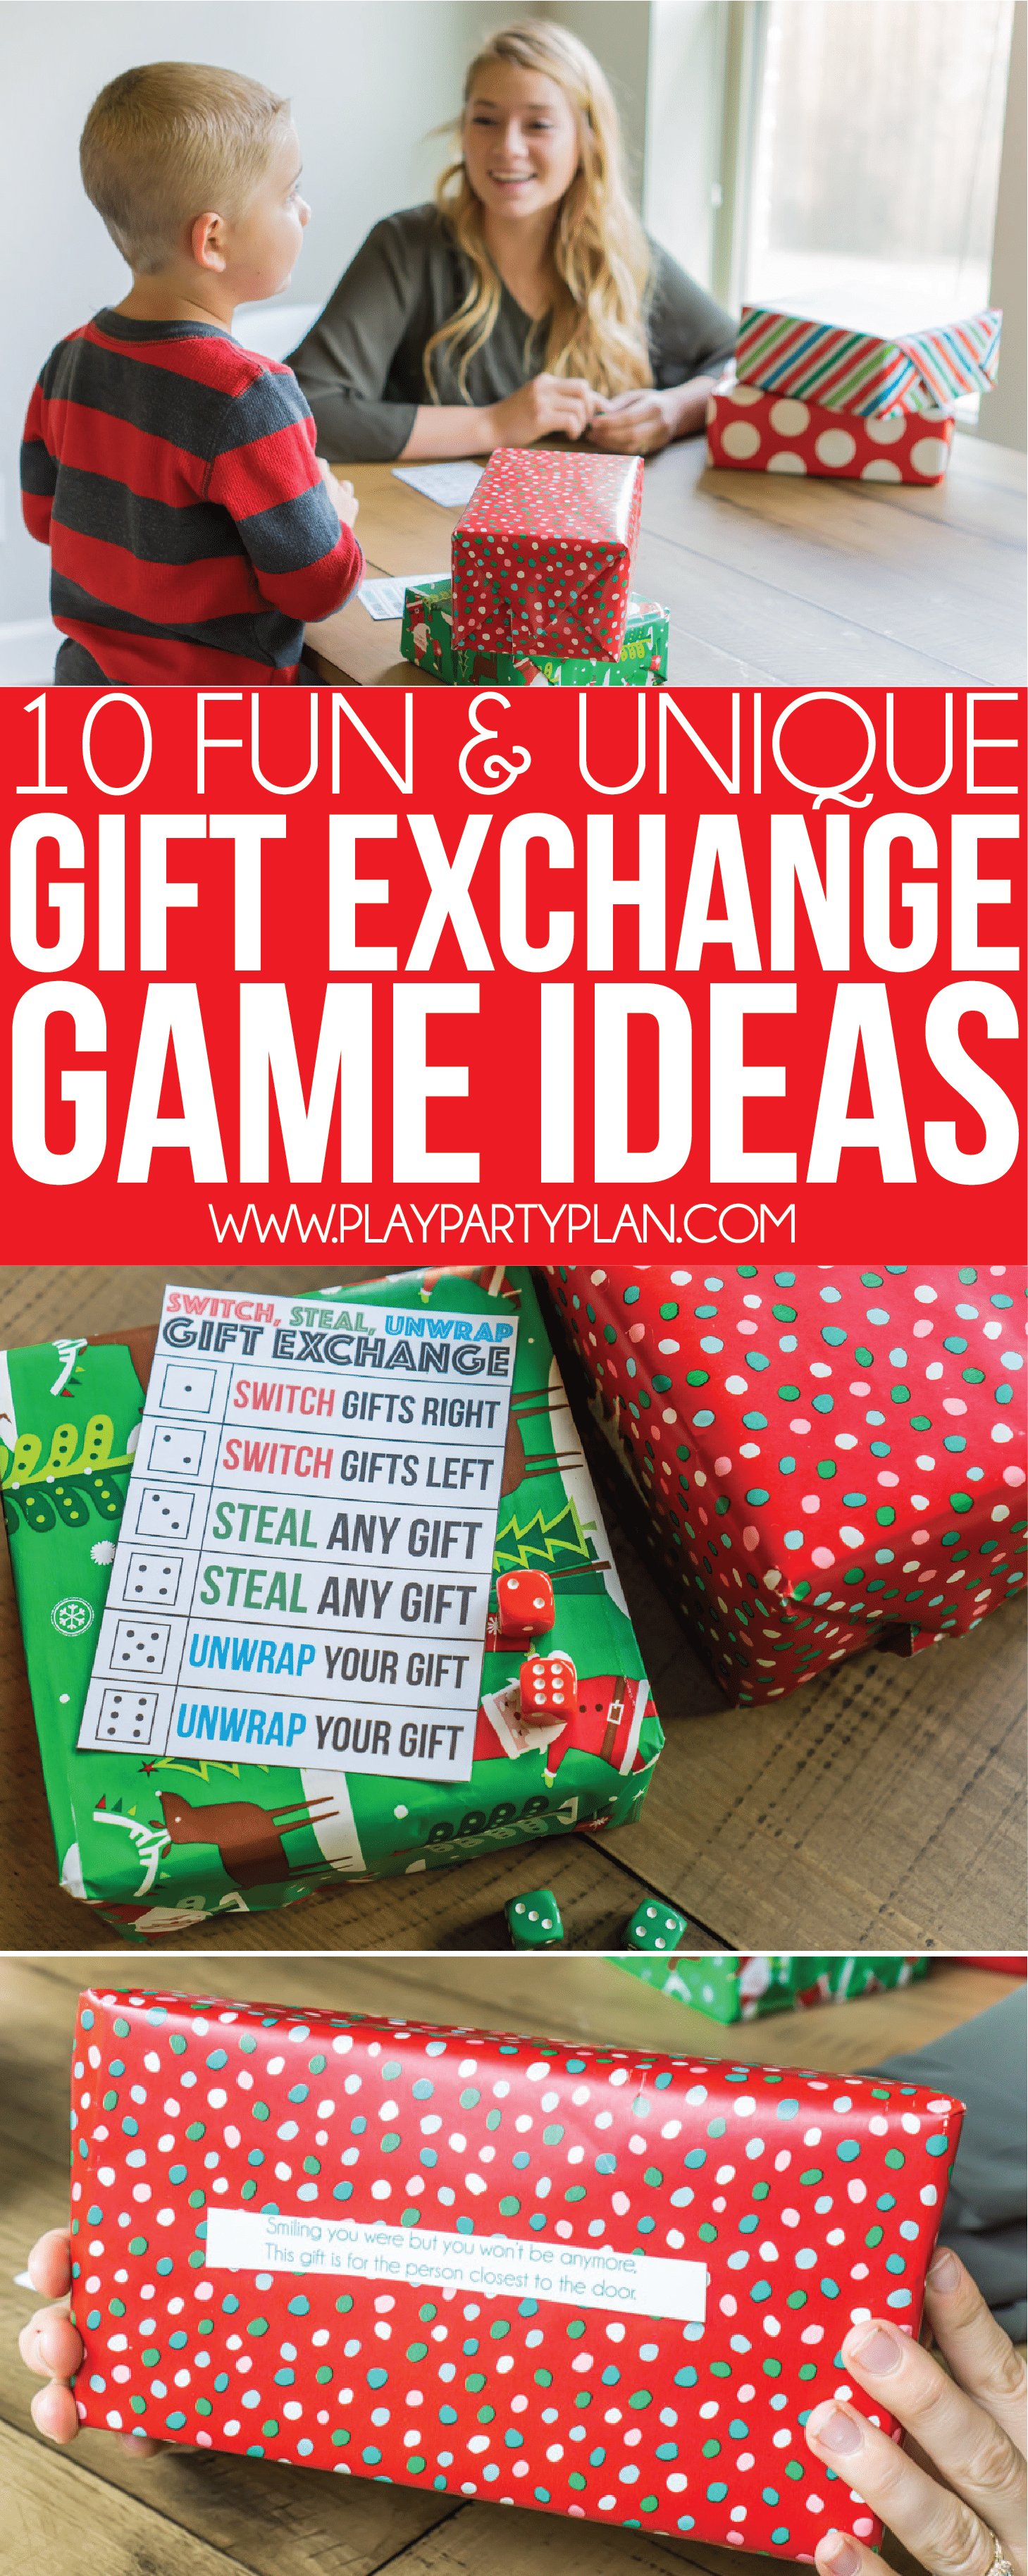 11 Fun & Creative Gift Exchange Games You Have to Try - Play Party Plan